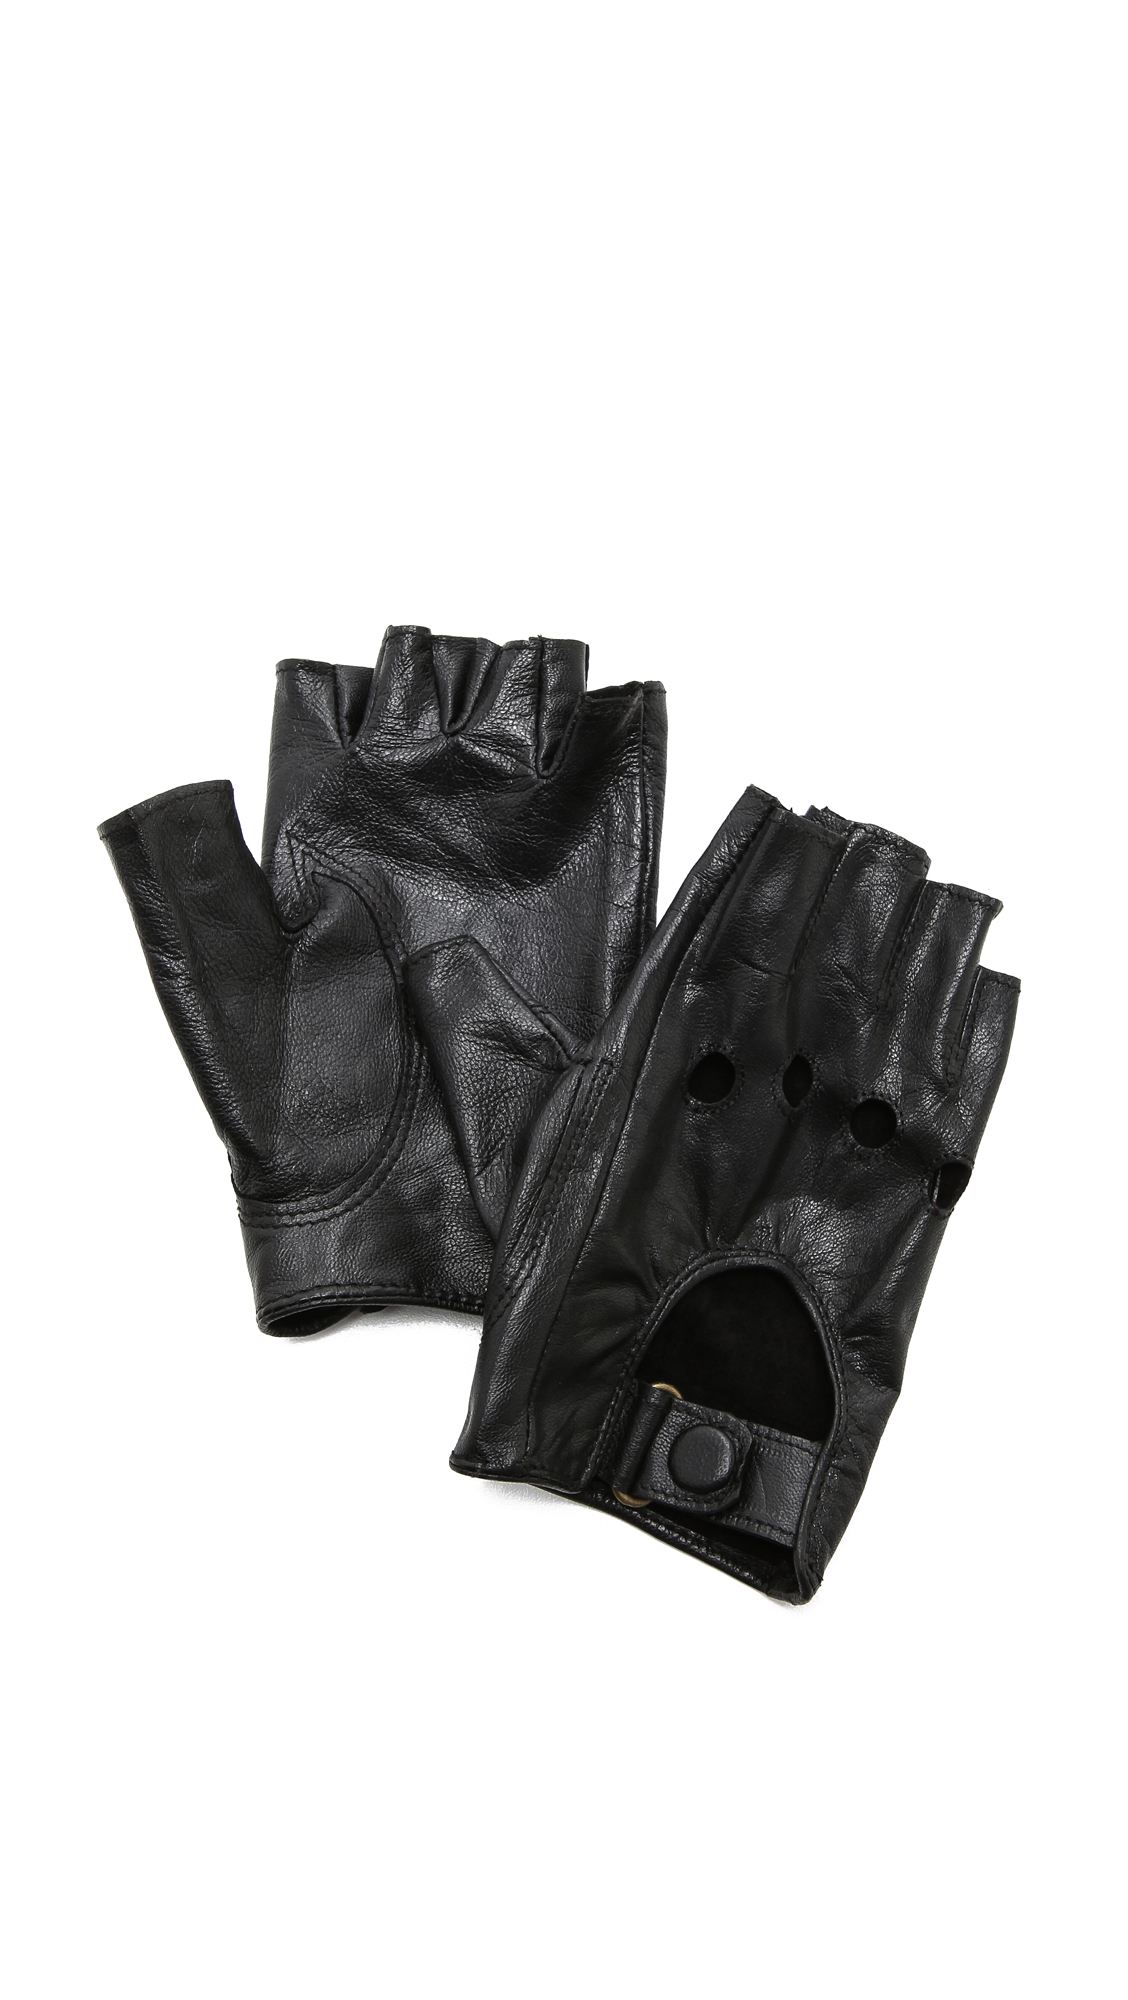 Carolina Amato Fingerless Moto Gloves - Black